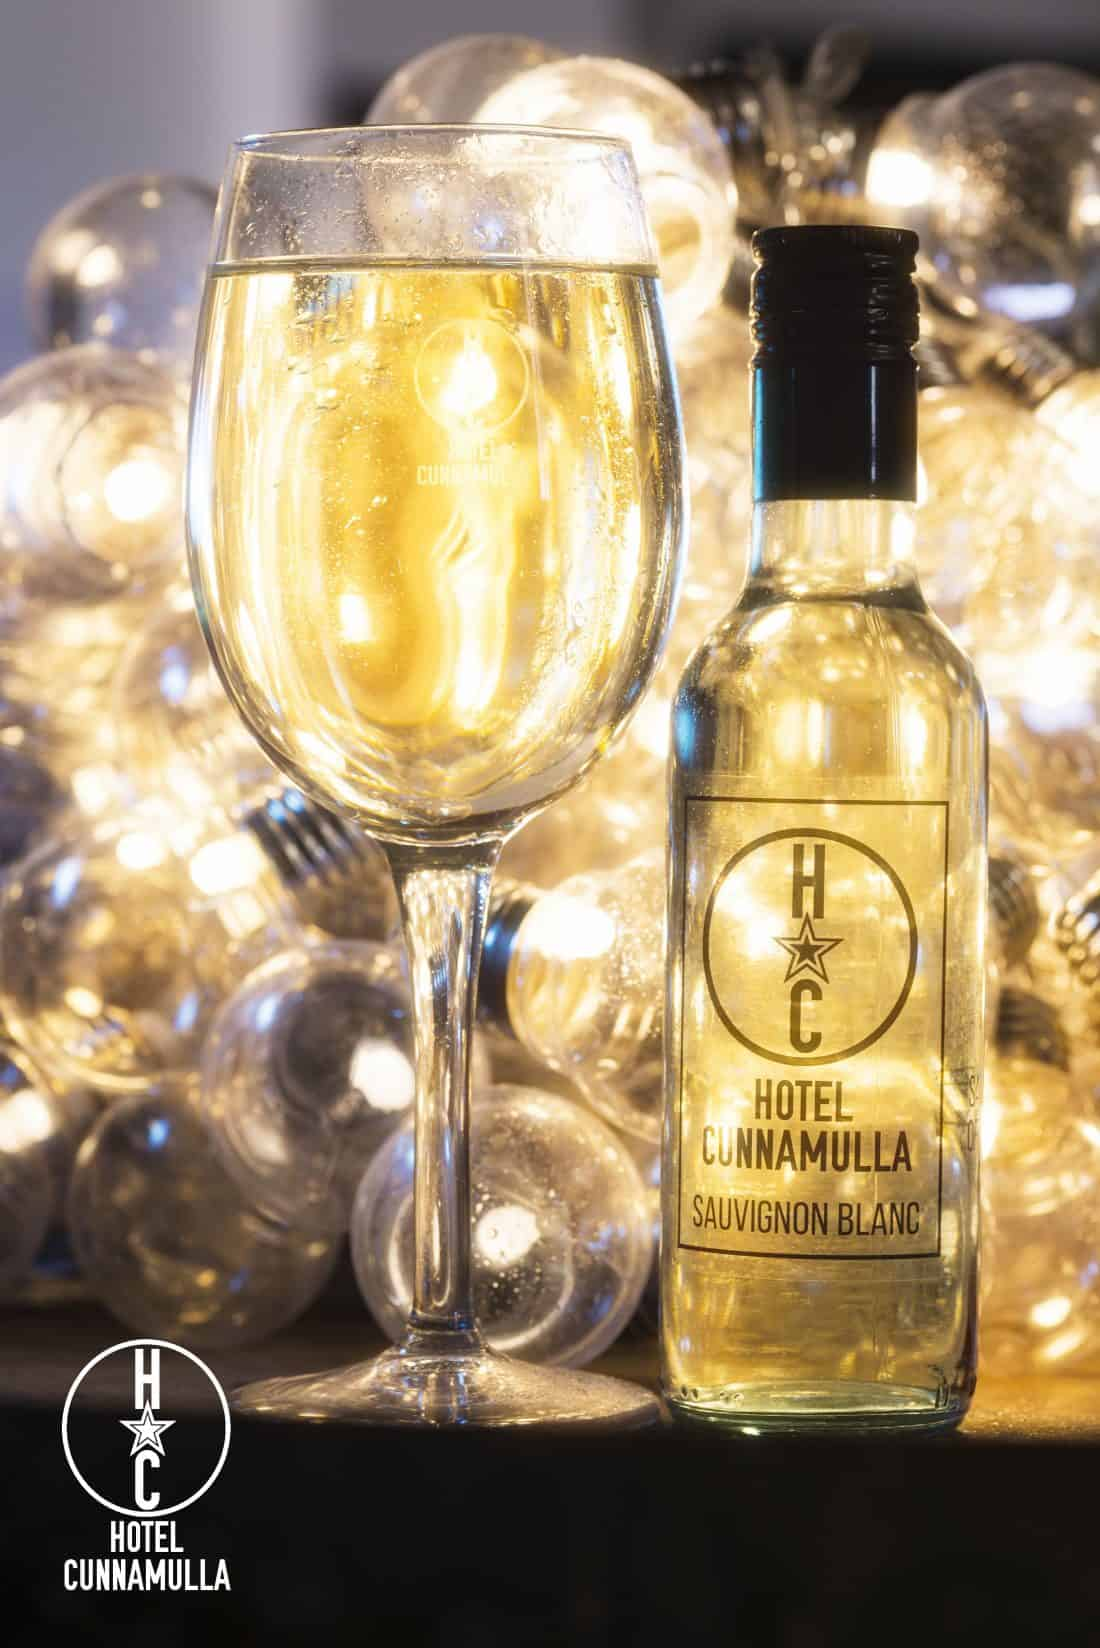 Cunnamulla Restaurant and Cafe wine